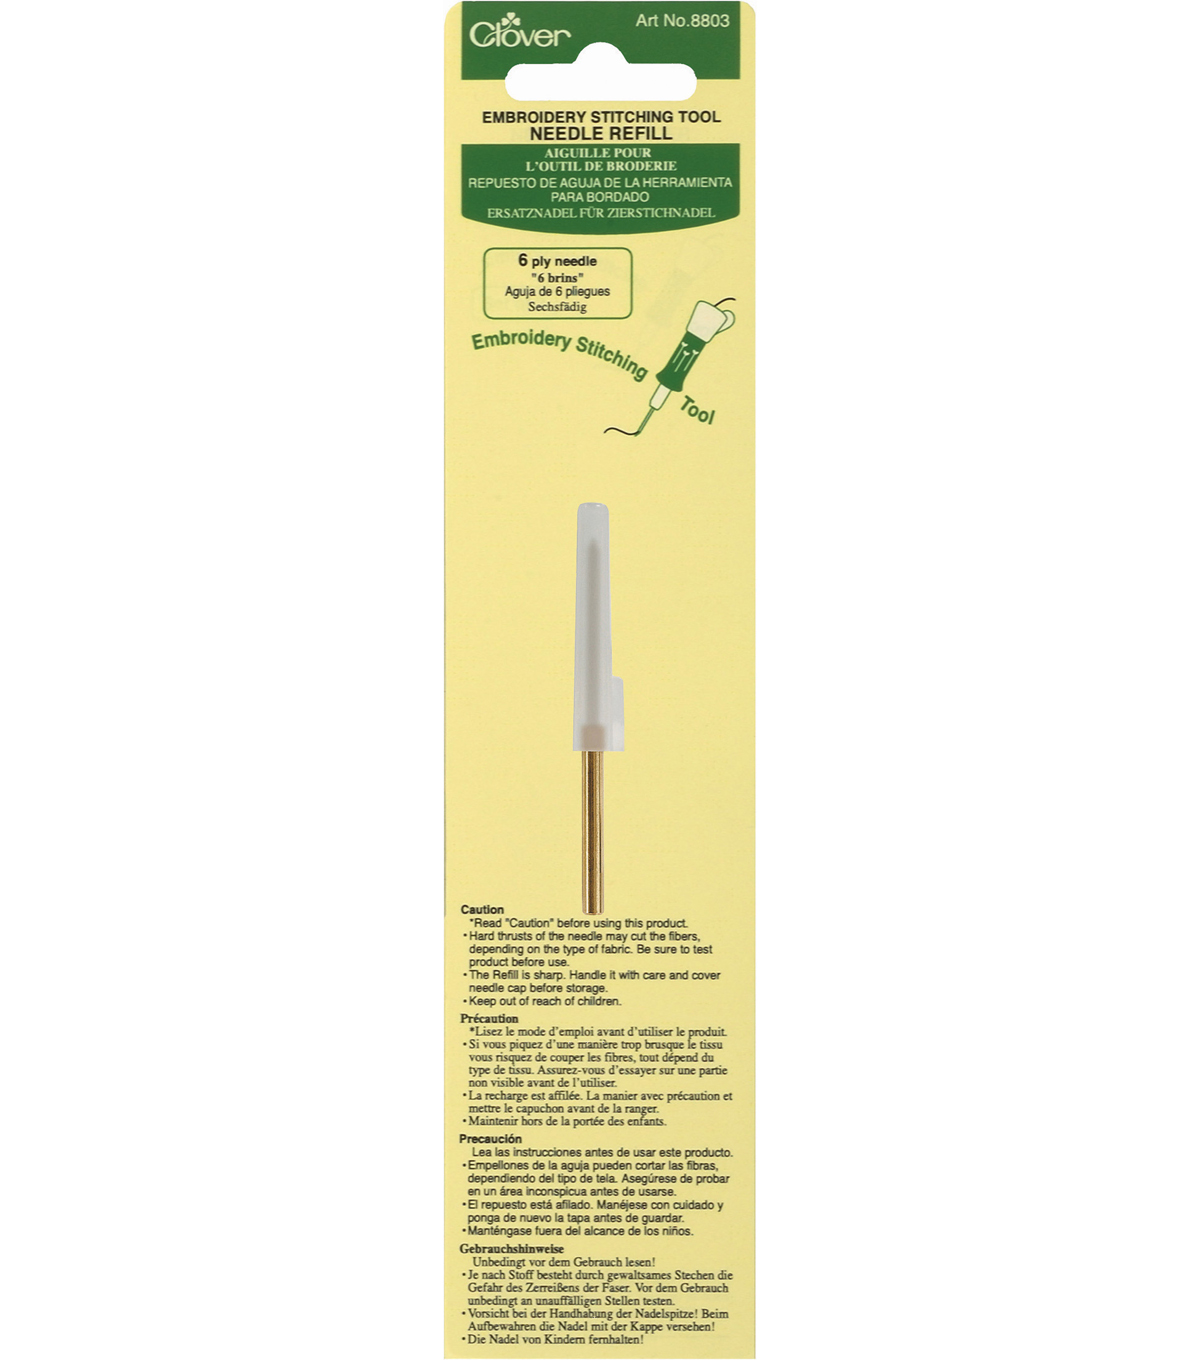 Embroidery Stitching Tool Needle Refill